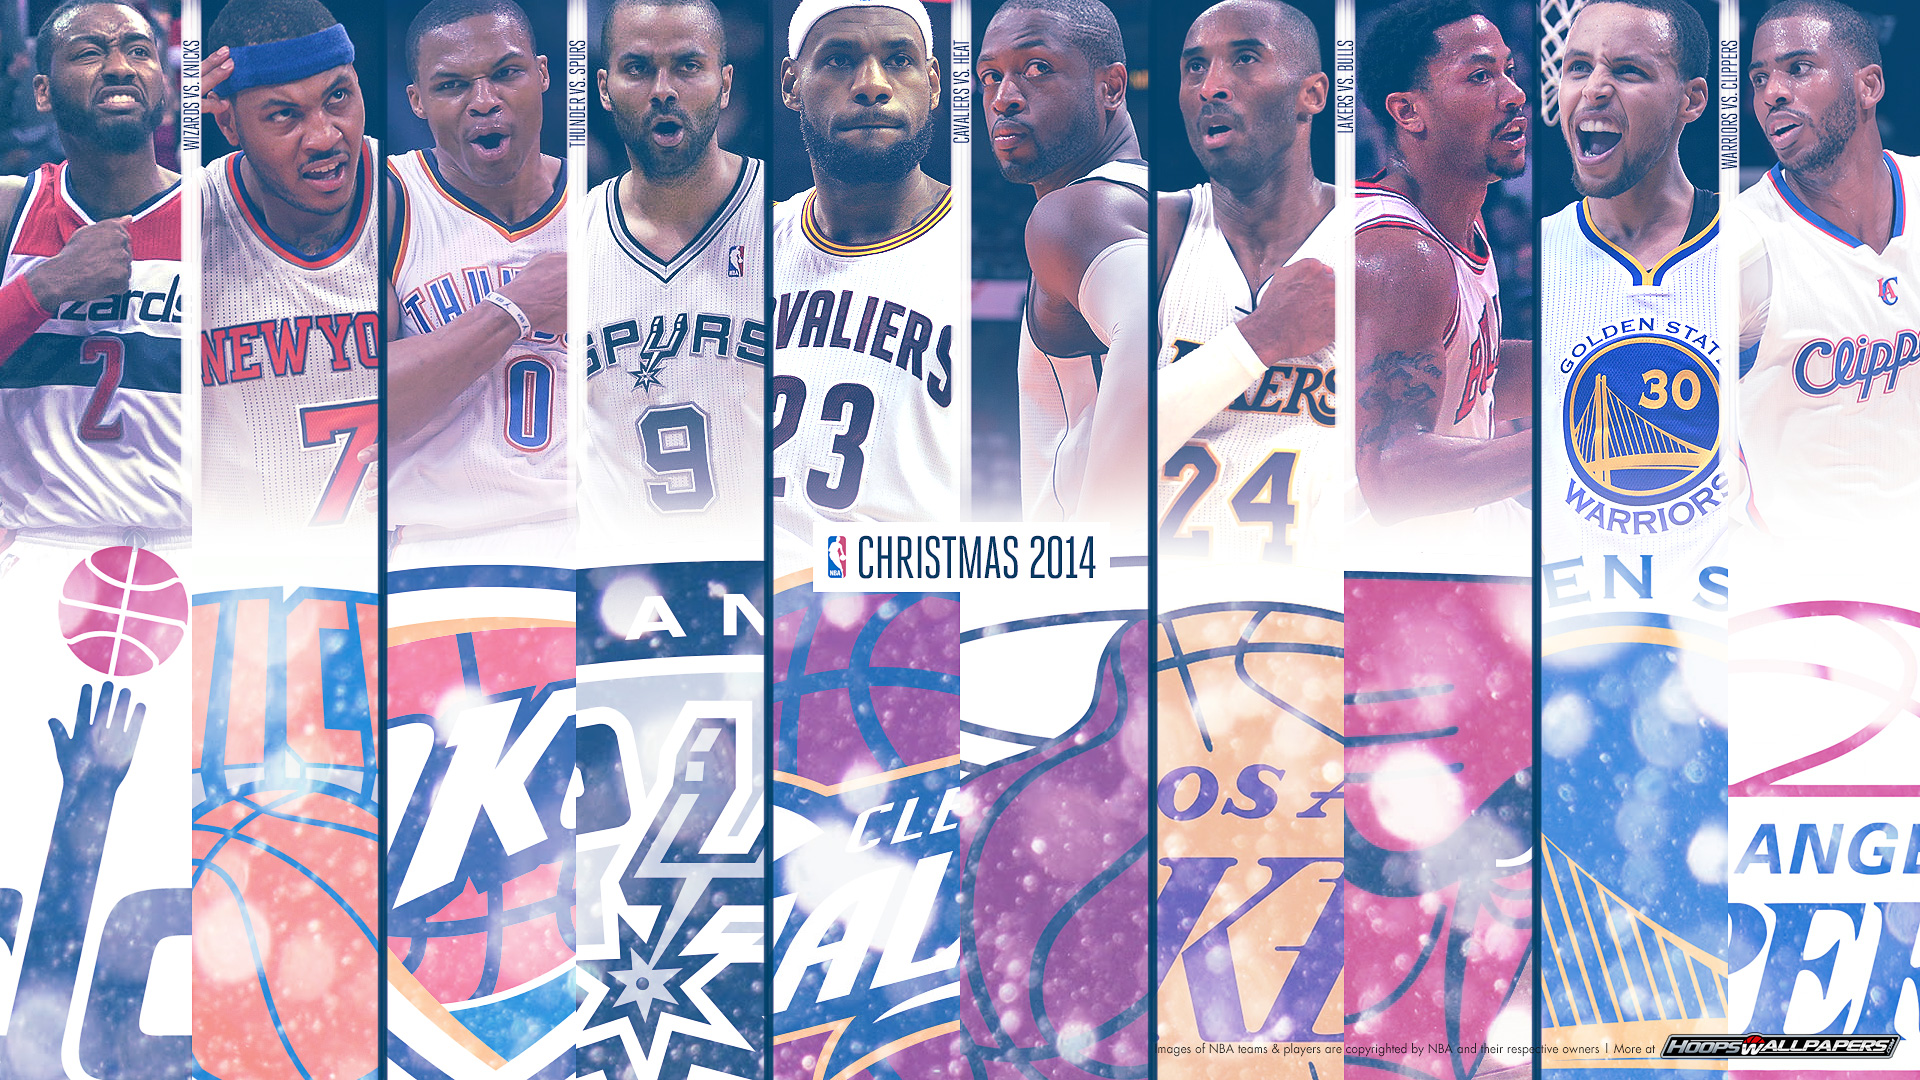 HoopsWallpapers Get The Latest HD And Mobile NBA Wallpapers